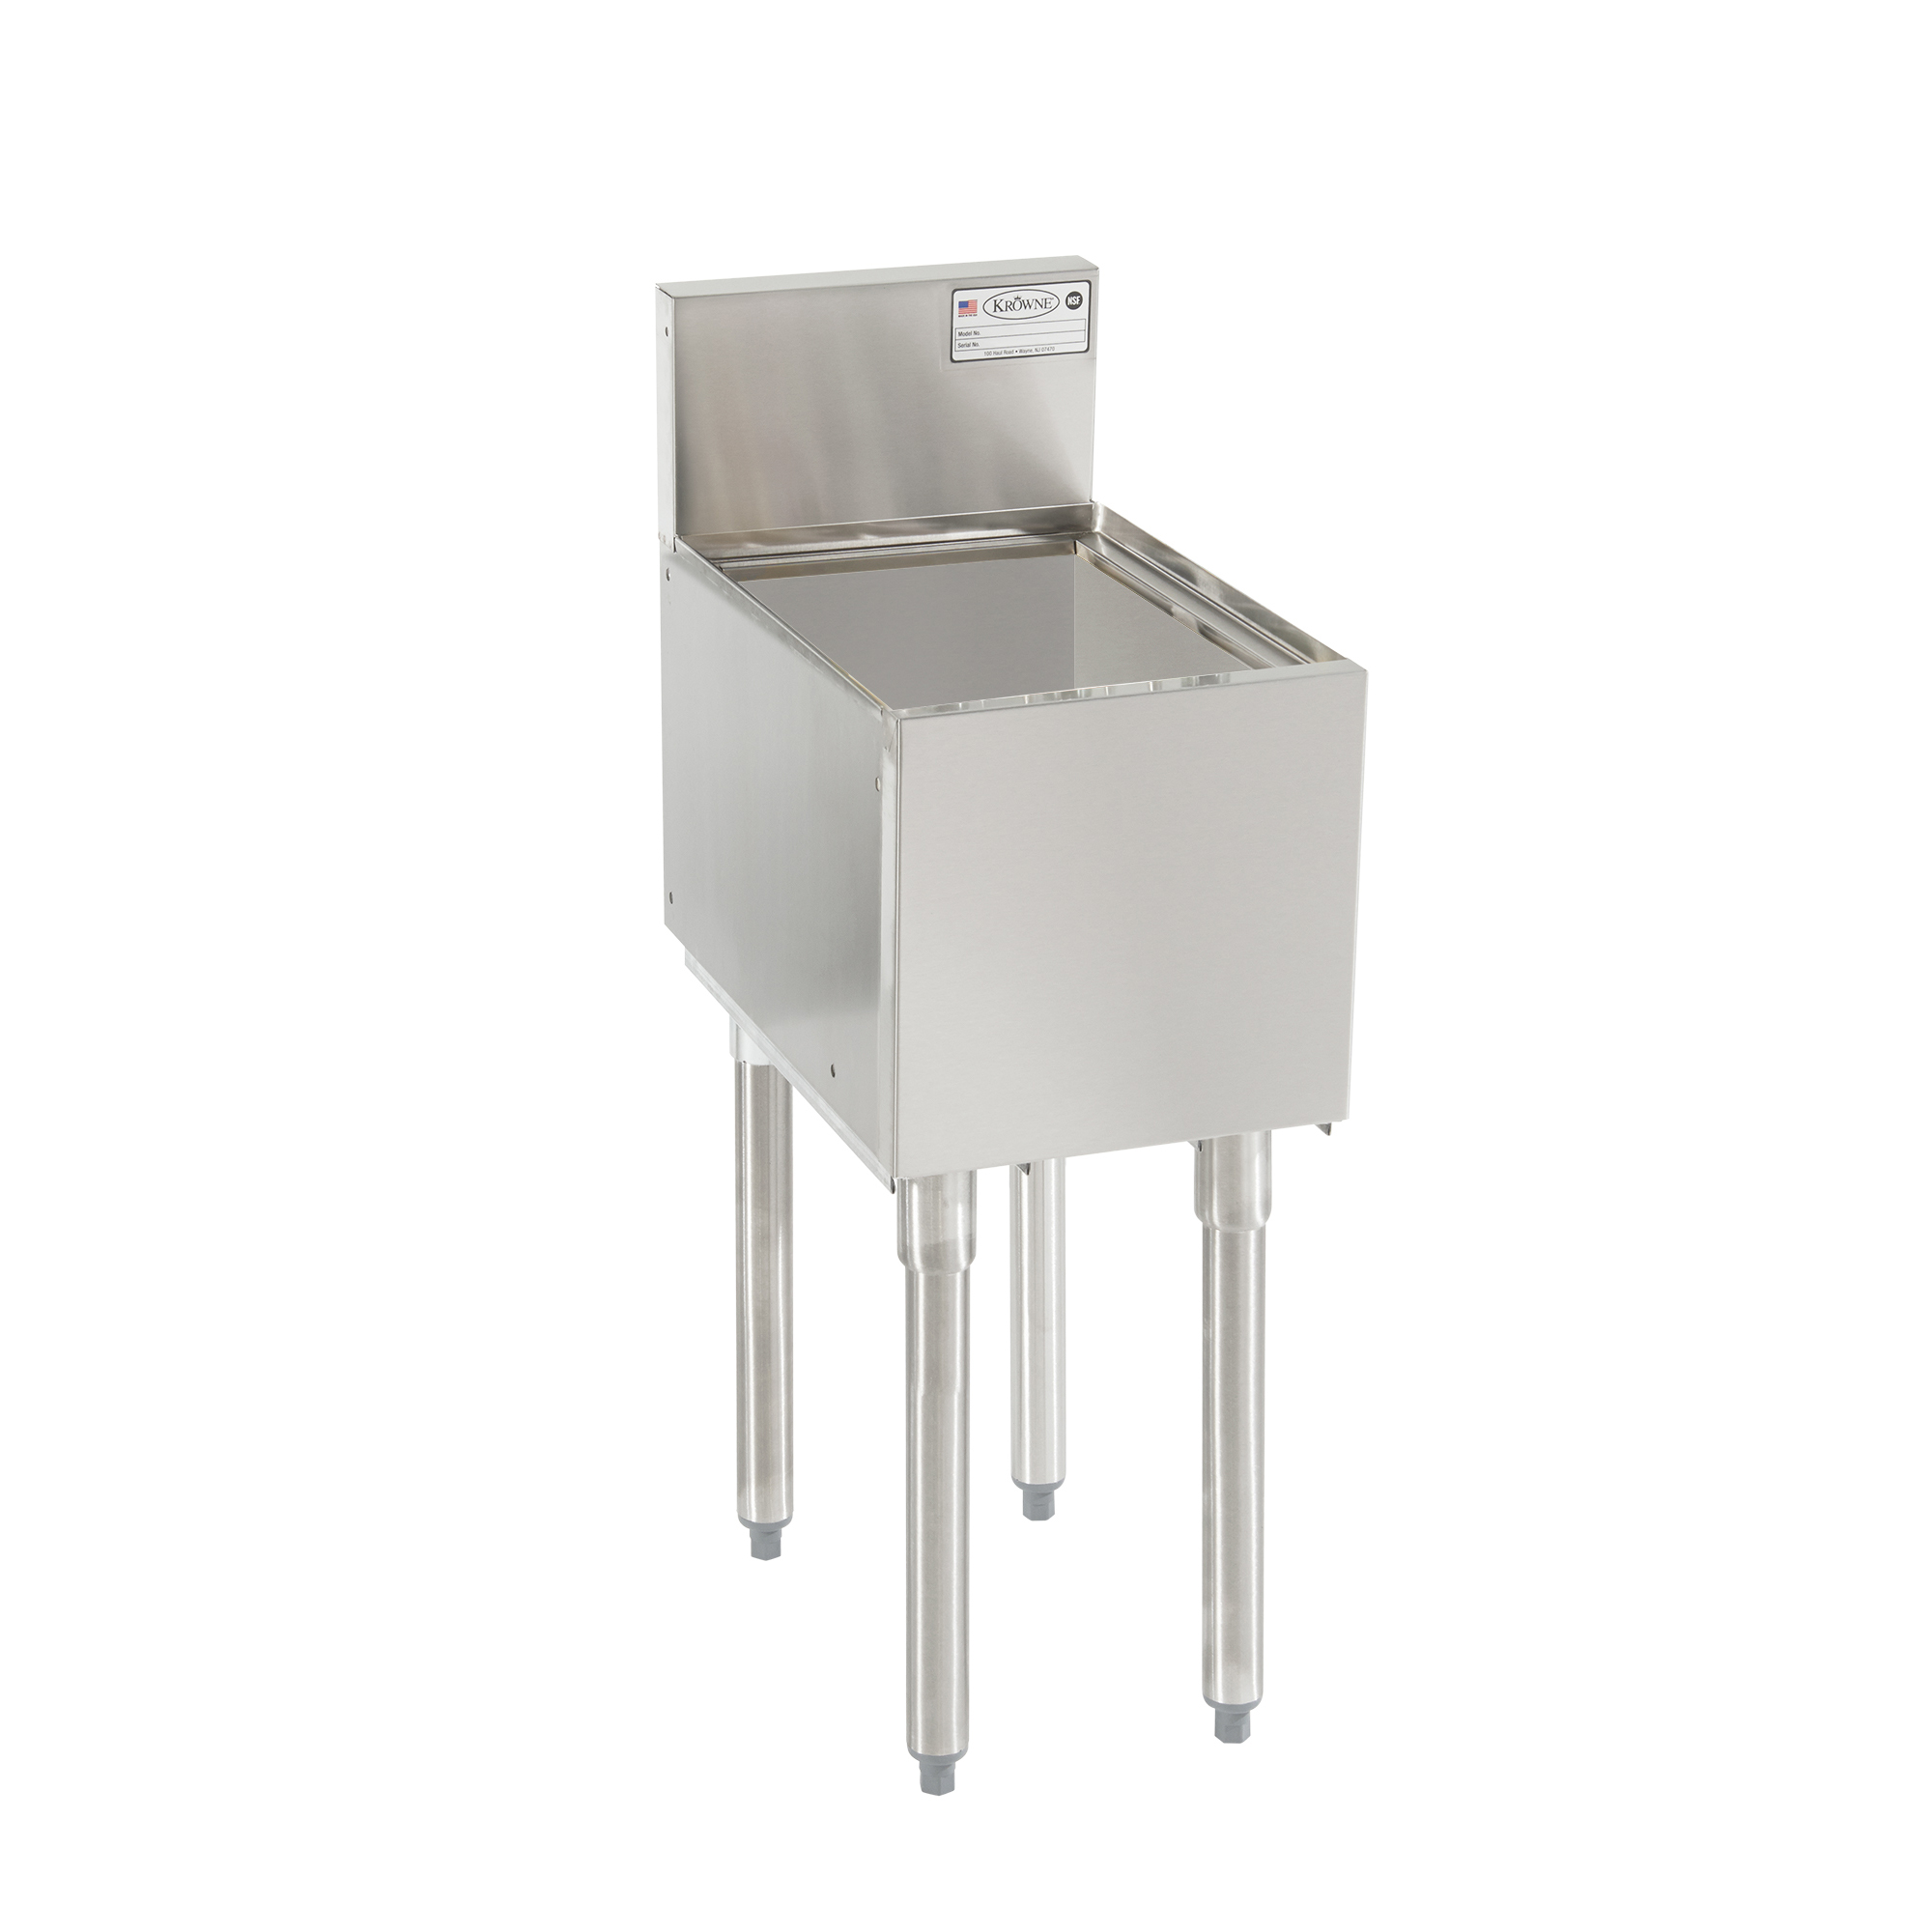 Krowne Metal KR18-8 underbar ice bin/cocktail unit